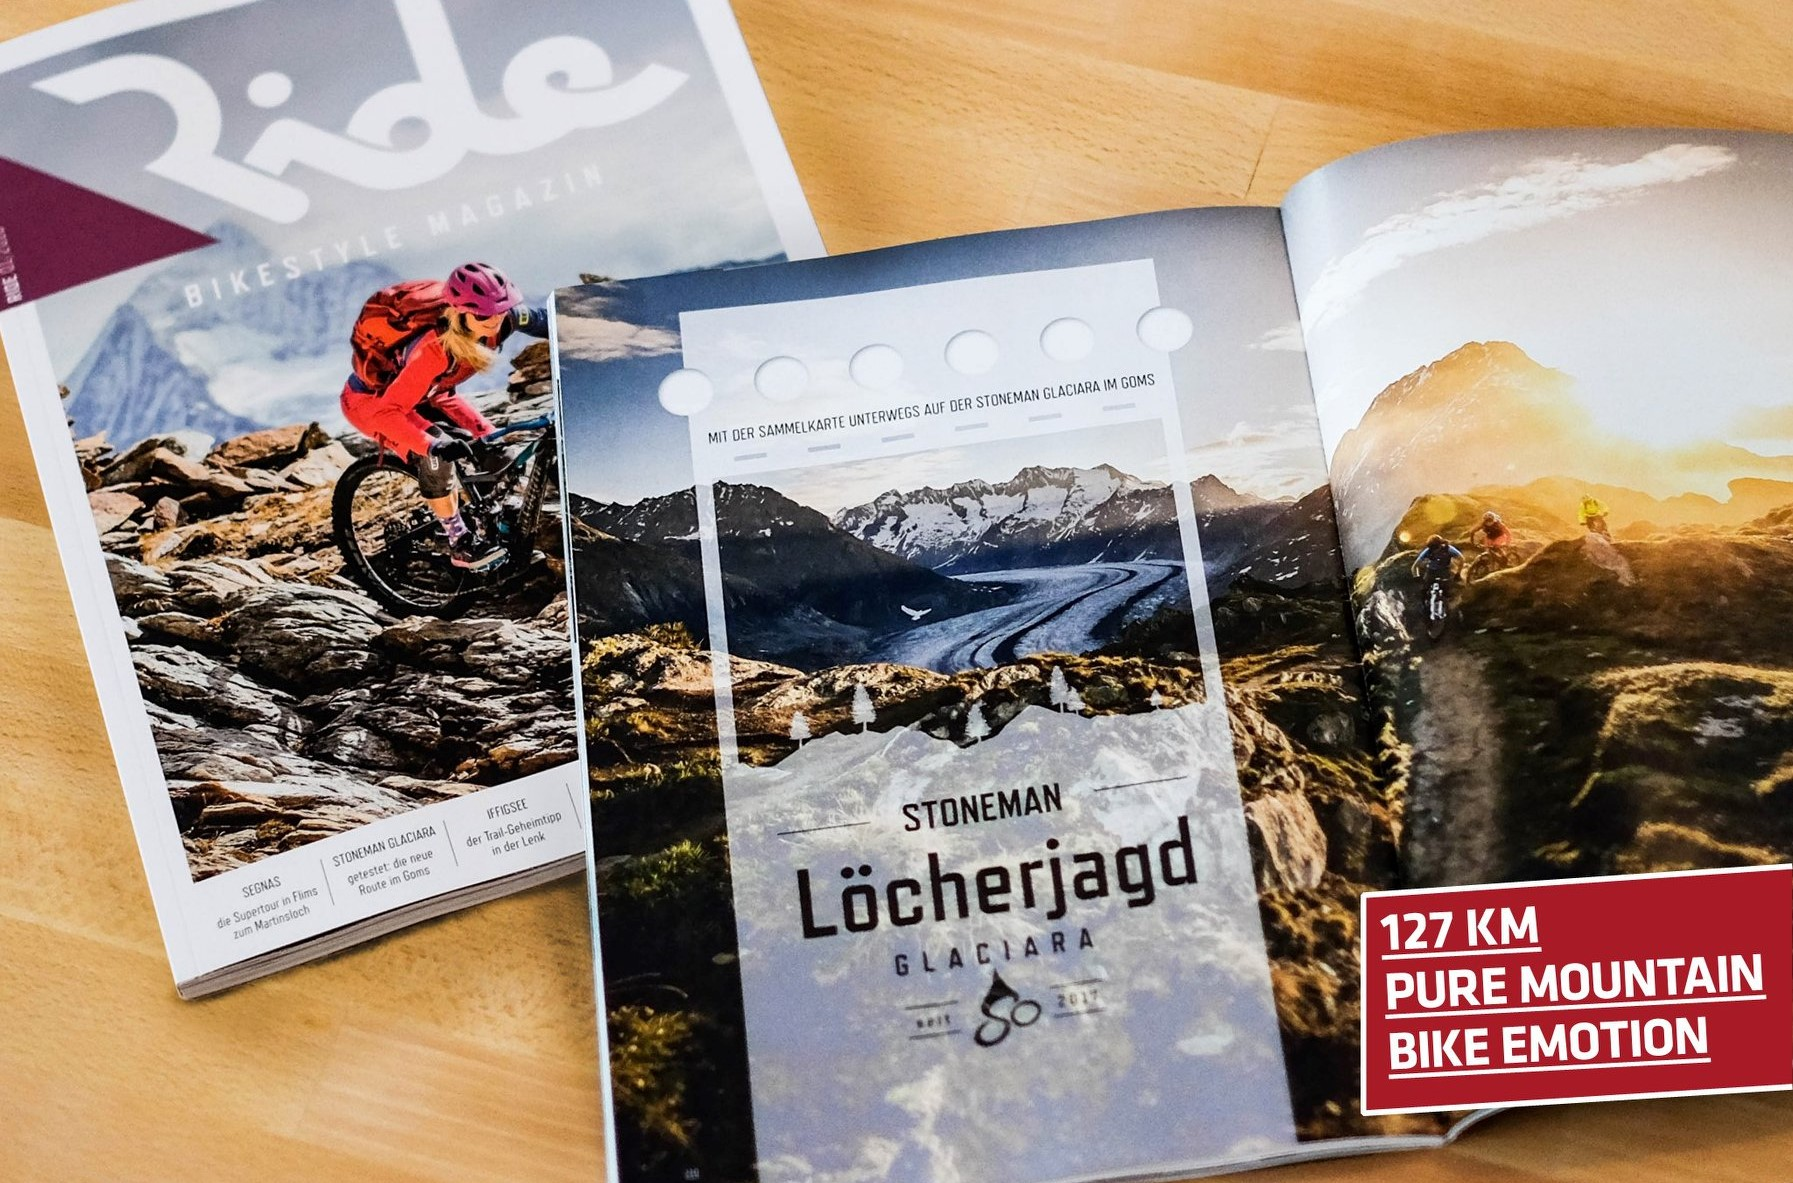 Ride Magazin 2018: Stoneman Glaciara Mountainbike-Tour 2 Tage (Wallis/Schweiz)